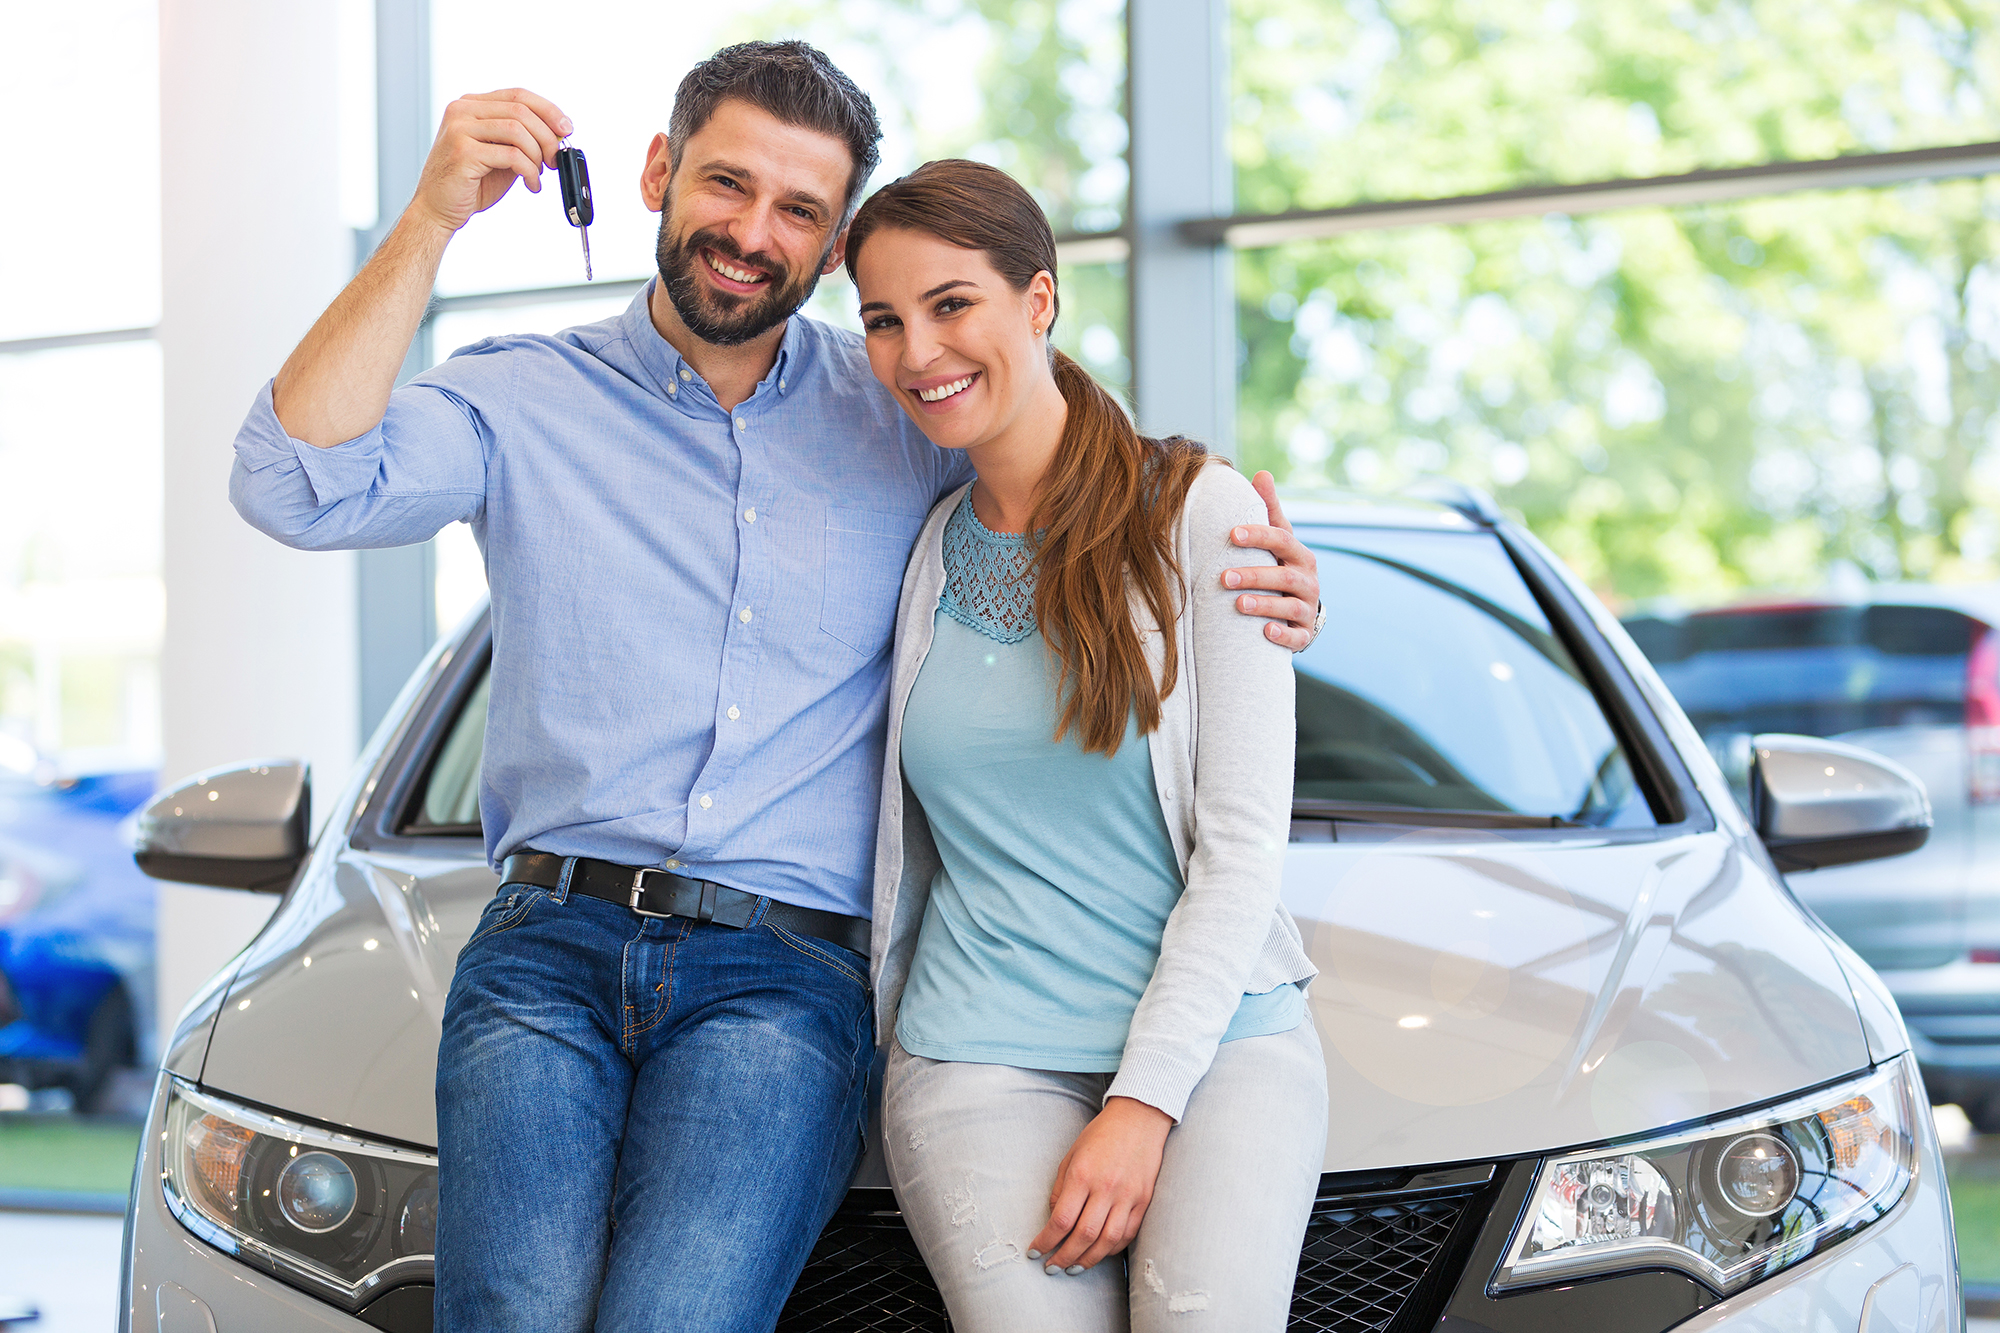 A couple with keys to a new car. (Image: Shutterstock)